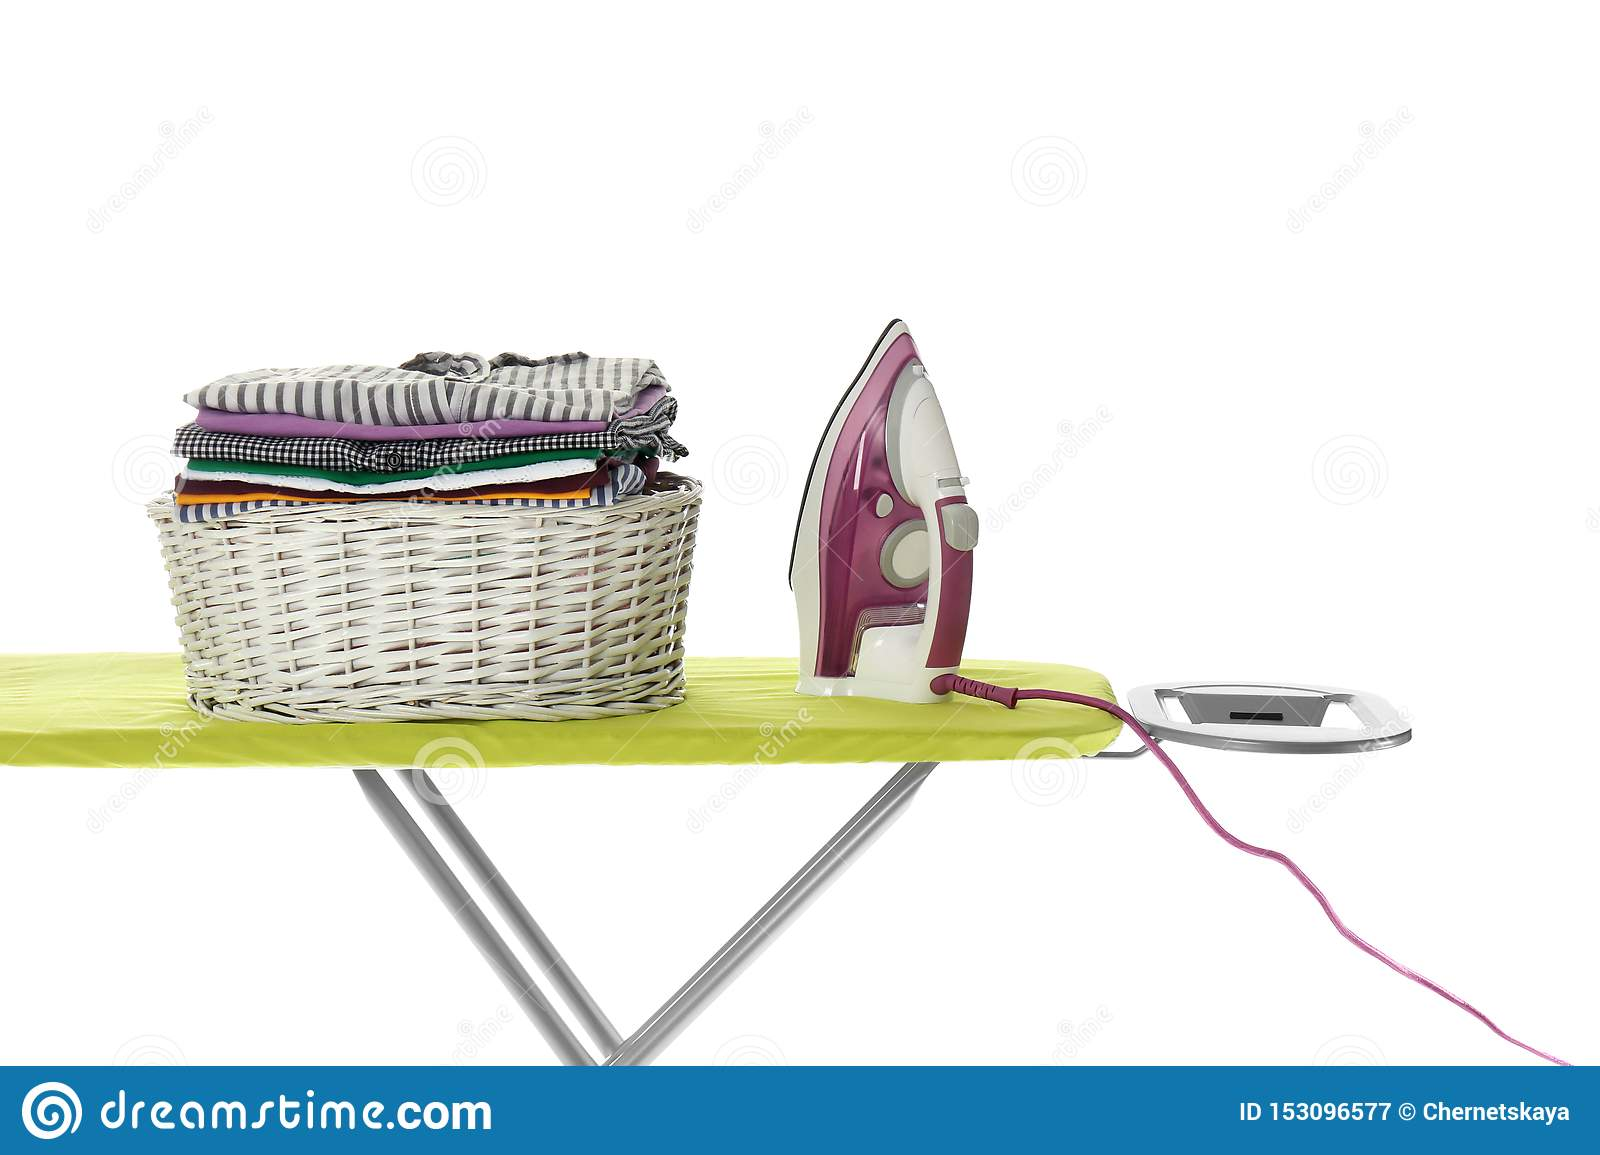 New modern iron and basket with clean laundry on board